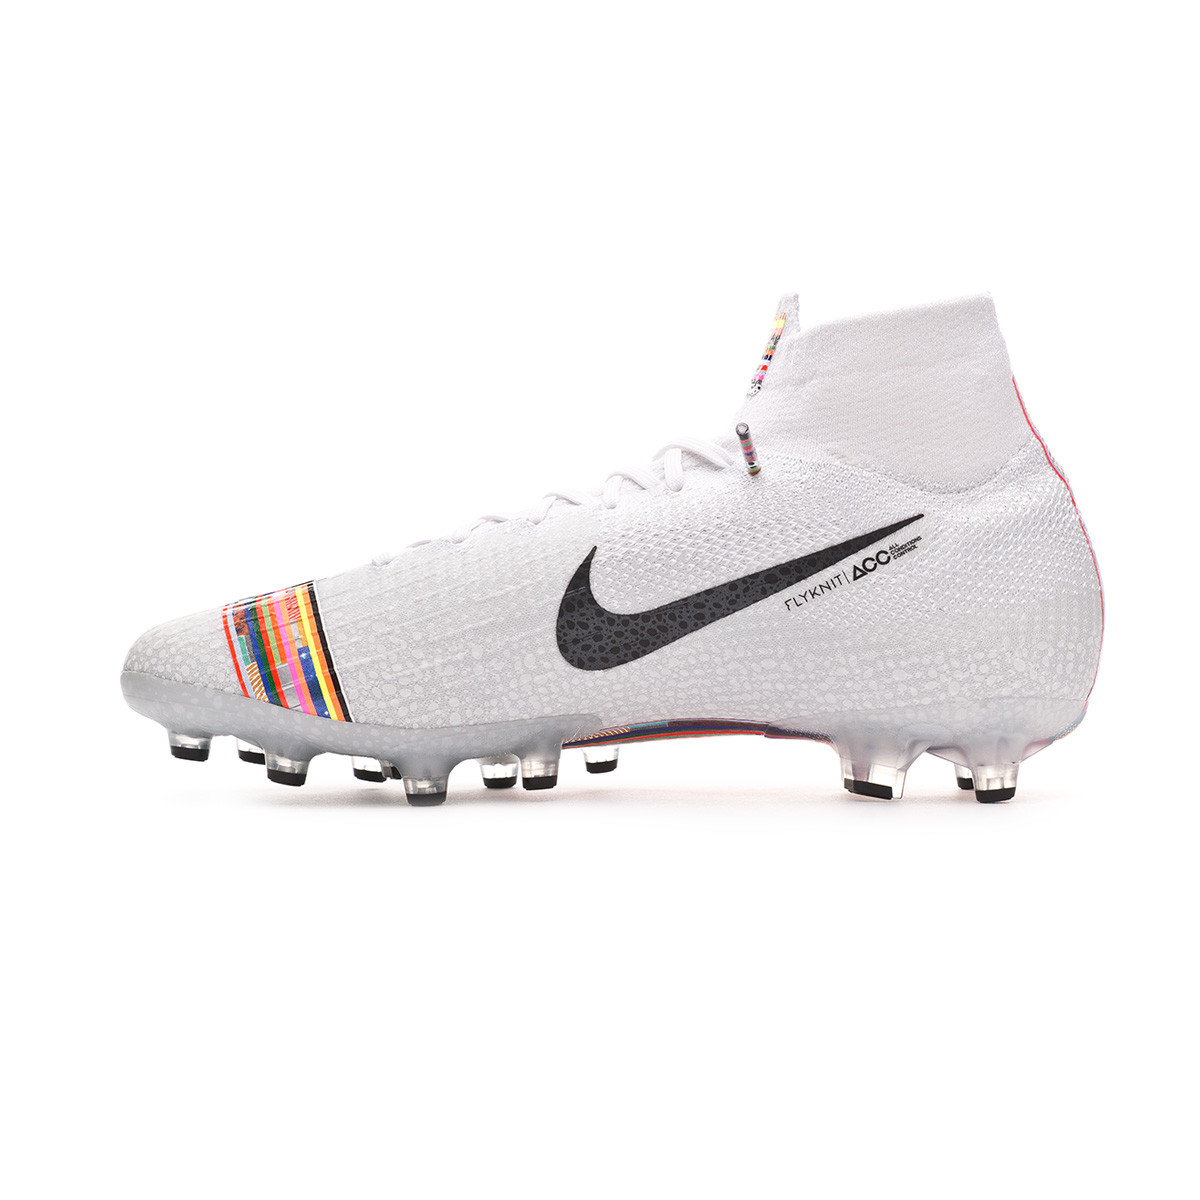 brand new 37170 ee9d6 Bota Mercurial Superfly VI Elite LVL UP AG-Pro White-Black-Pure platinum